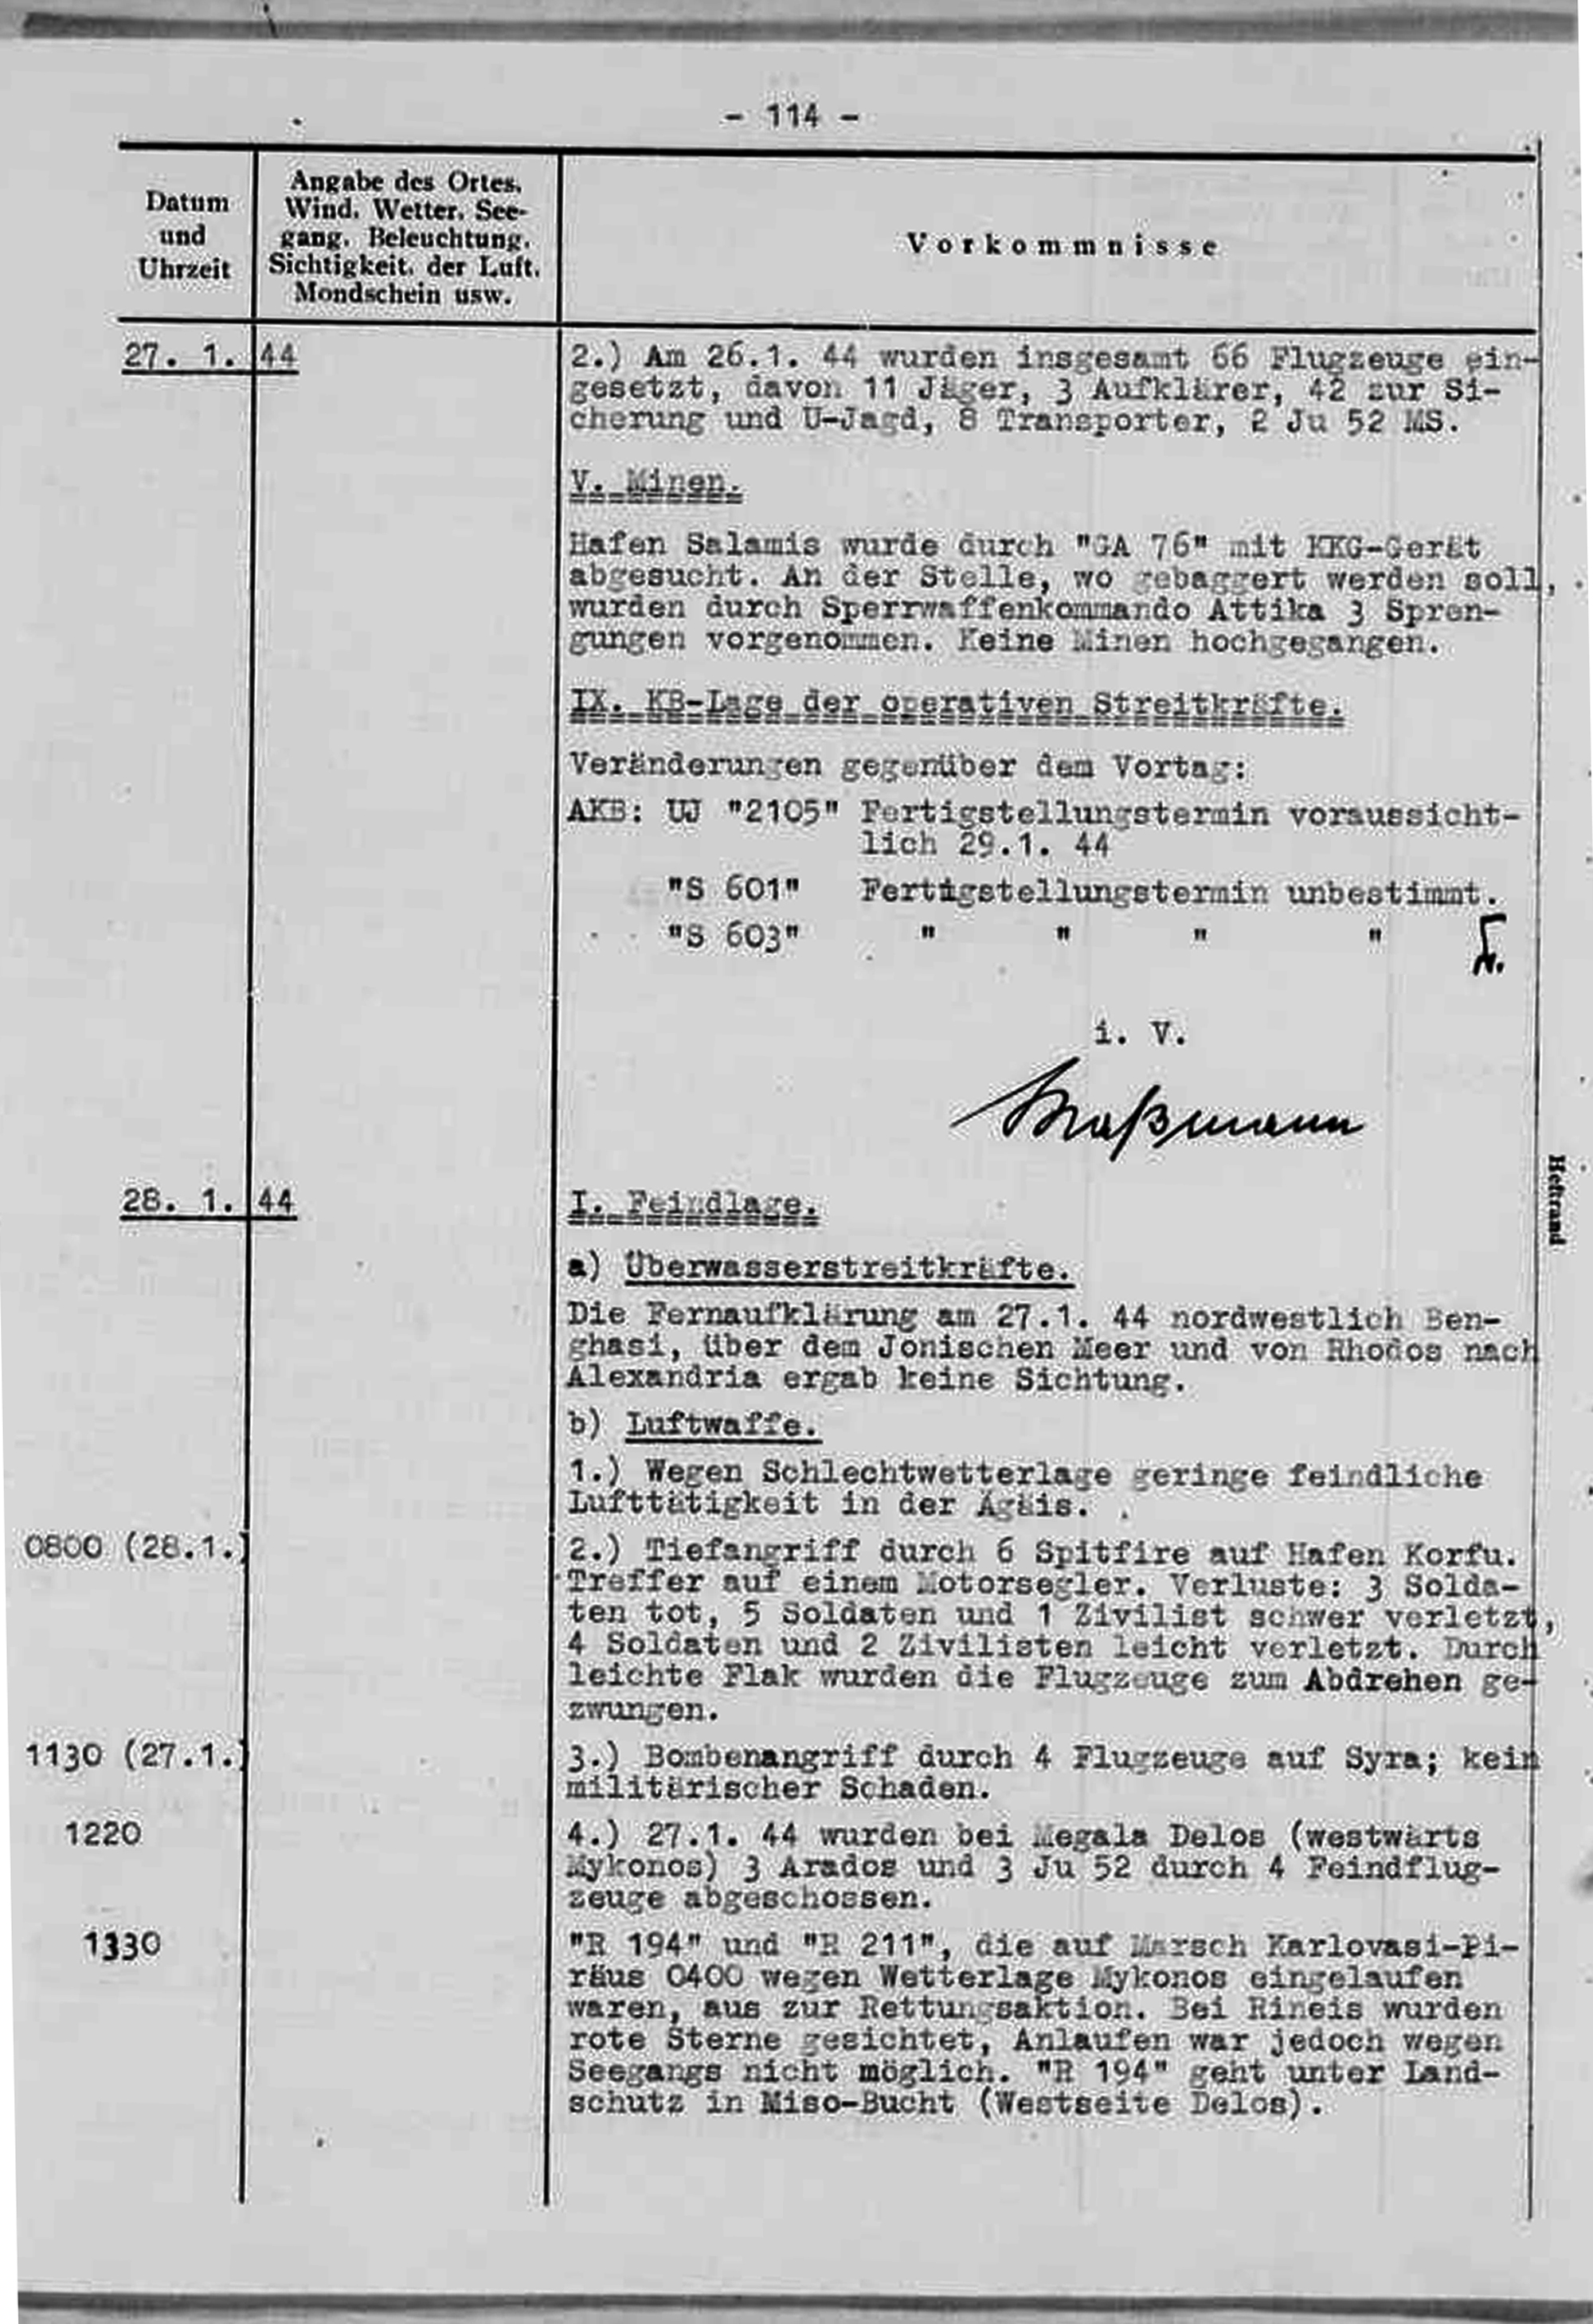 The German report on the incident